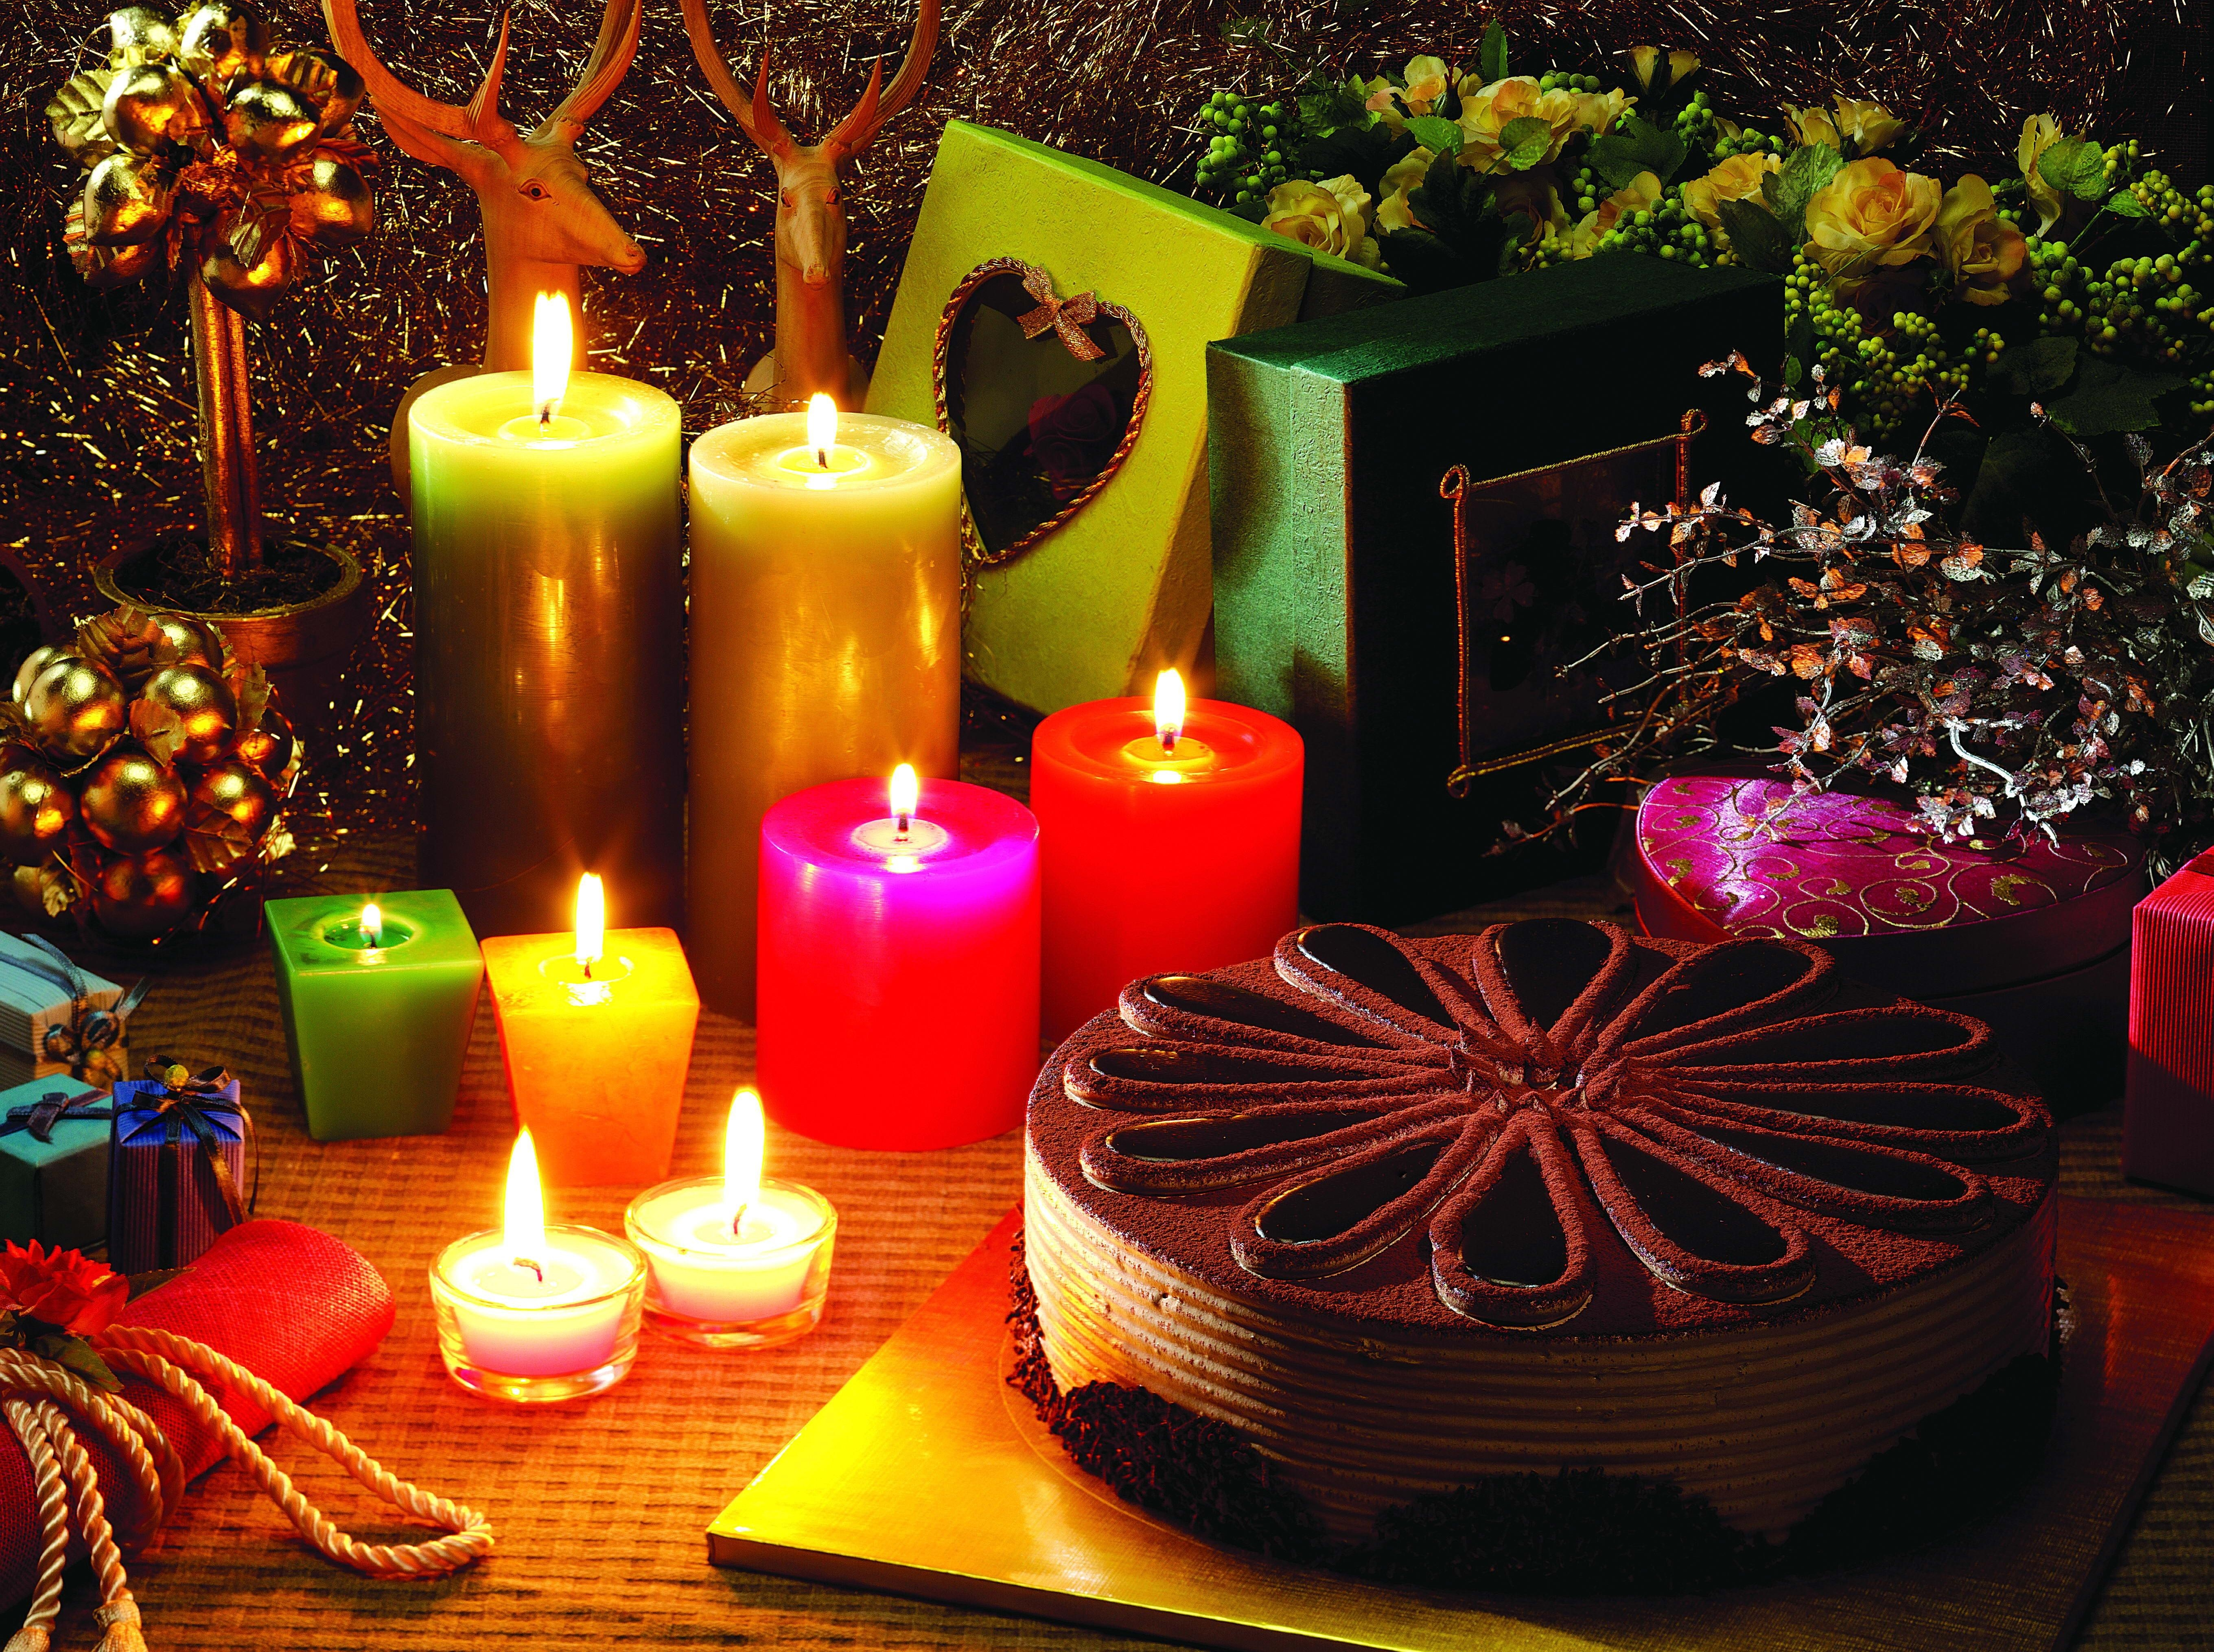 90817 download wallpaper Holidays, Christmas Candles, New Year's Candles, Cake, Presents, Gifts, Deers, Holiday screensavers and pictures for free